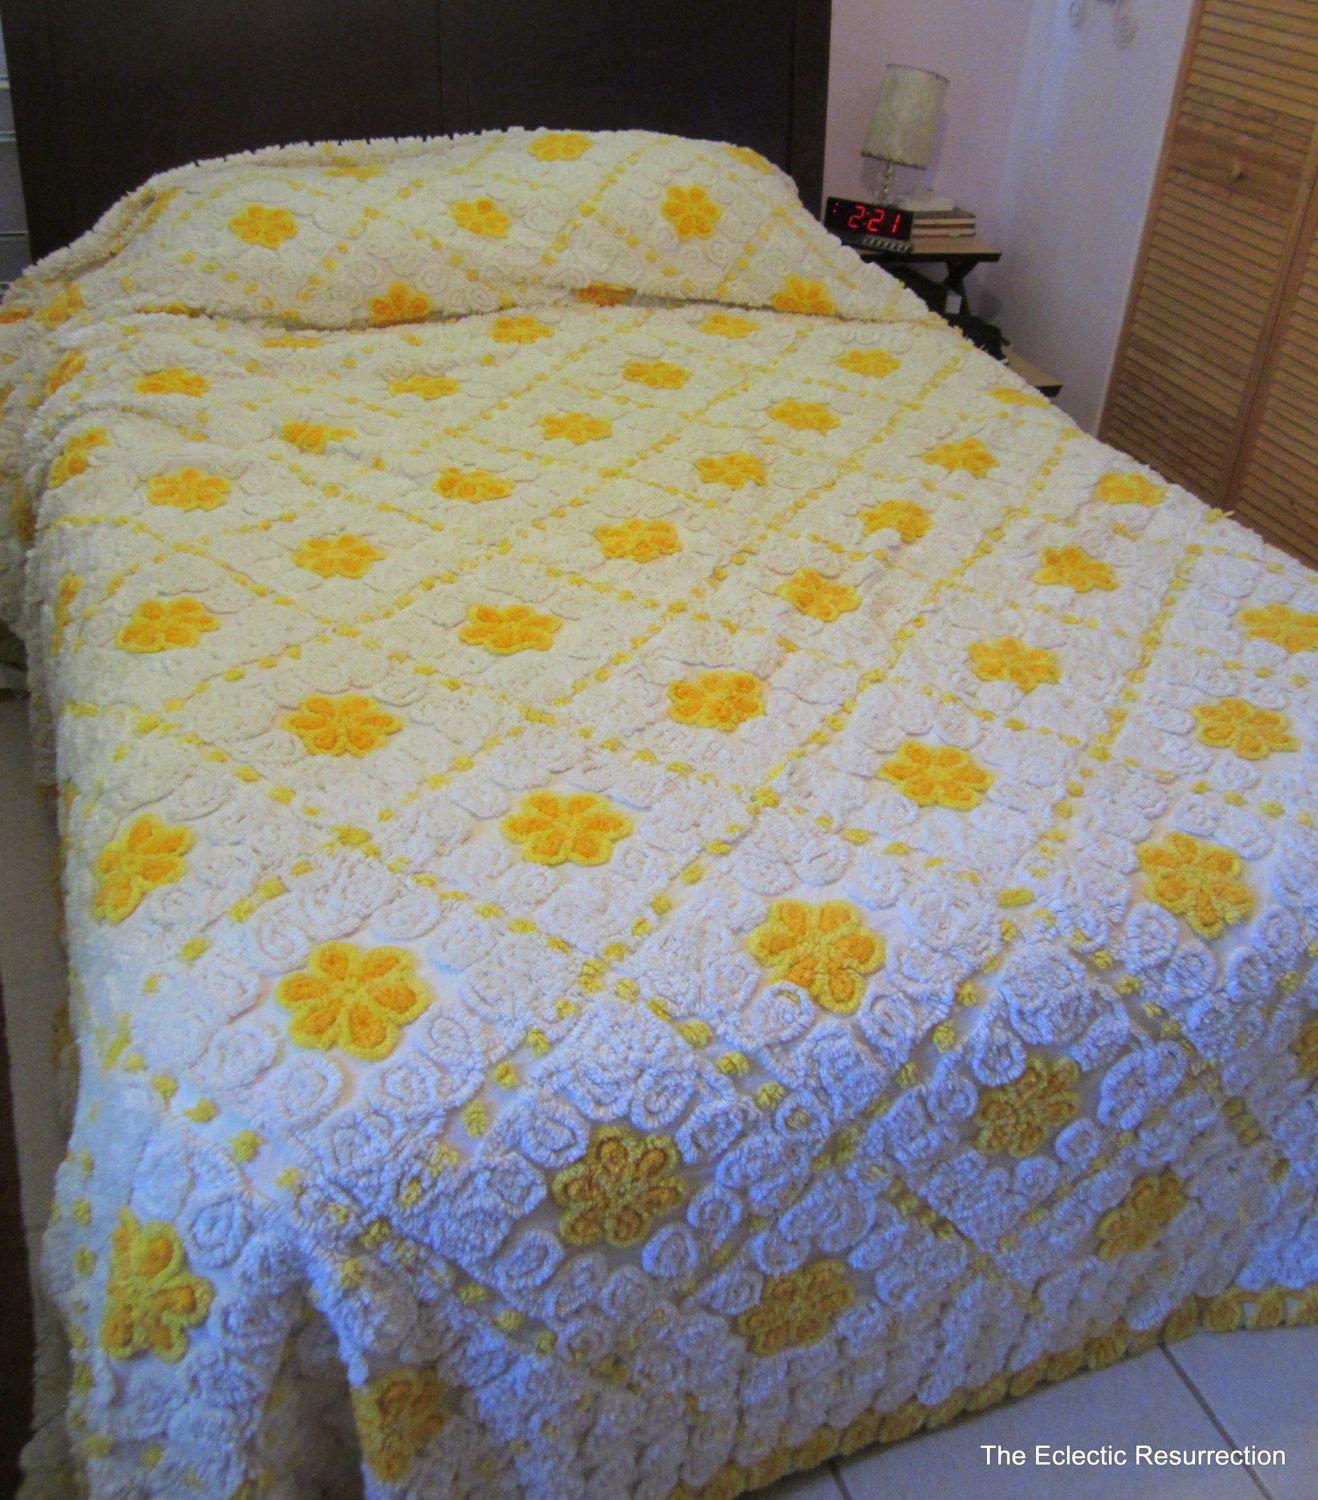 Vintage 1950s Chenille Bedspread Rare King Size 120 X 120 225 00 Via Etsy Vintage Bedspread Chenille Bedspread Bed Spreads